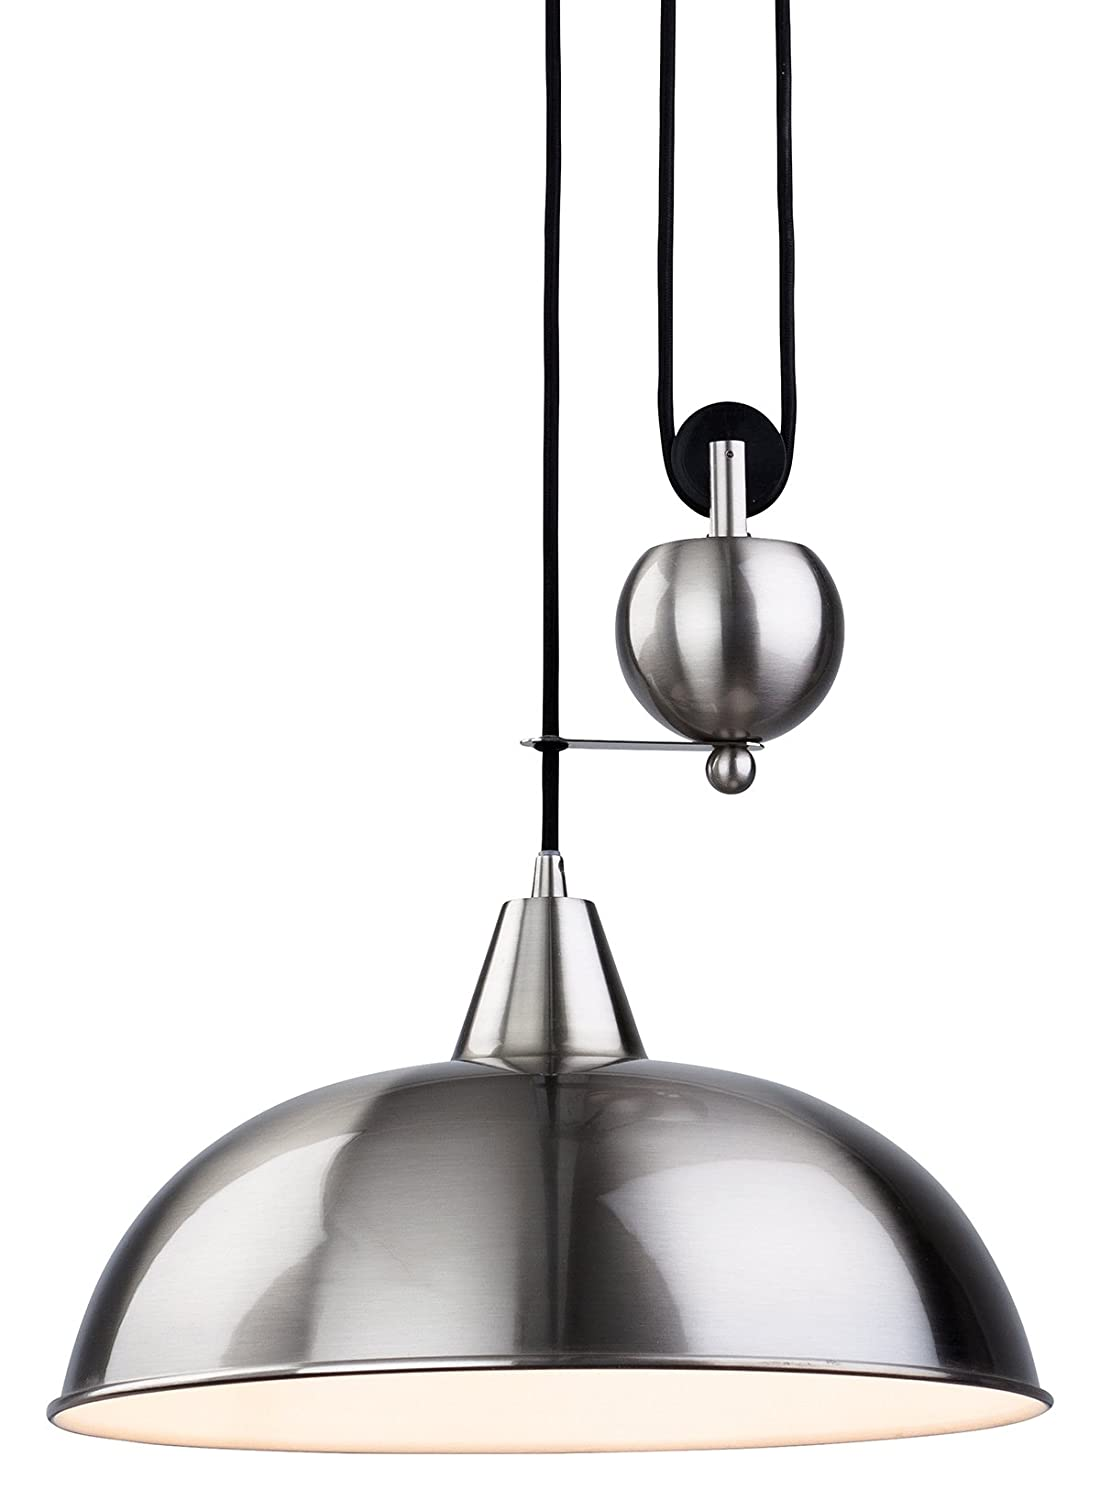 Rise and fall pendant light fittings - Firstlight 2309bs E27 Edison Screw 60 Watt Century Rise And Fall Pendant Light Brushed Steel Amazon Co Uk Lighting